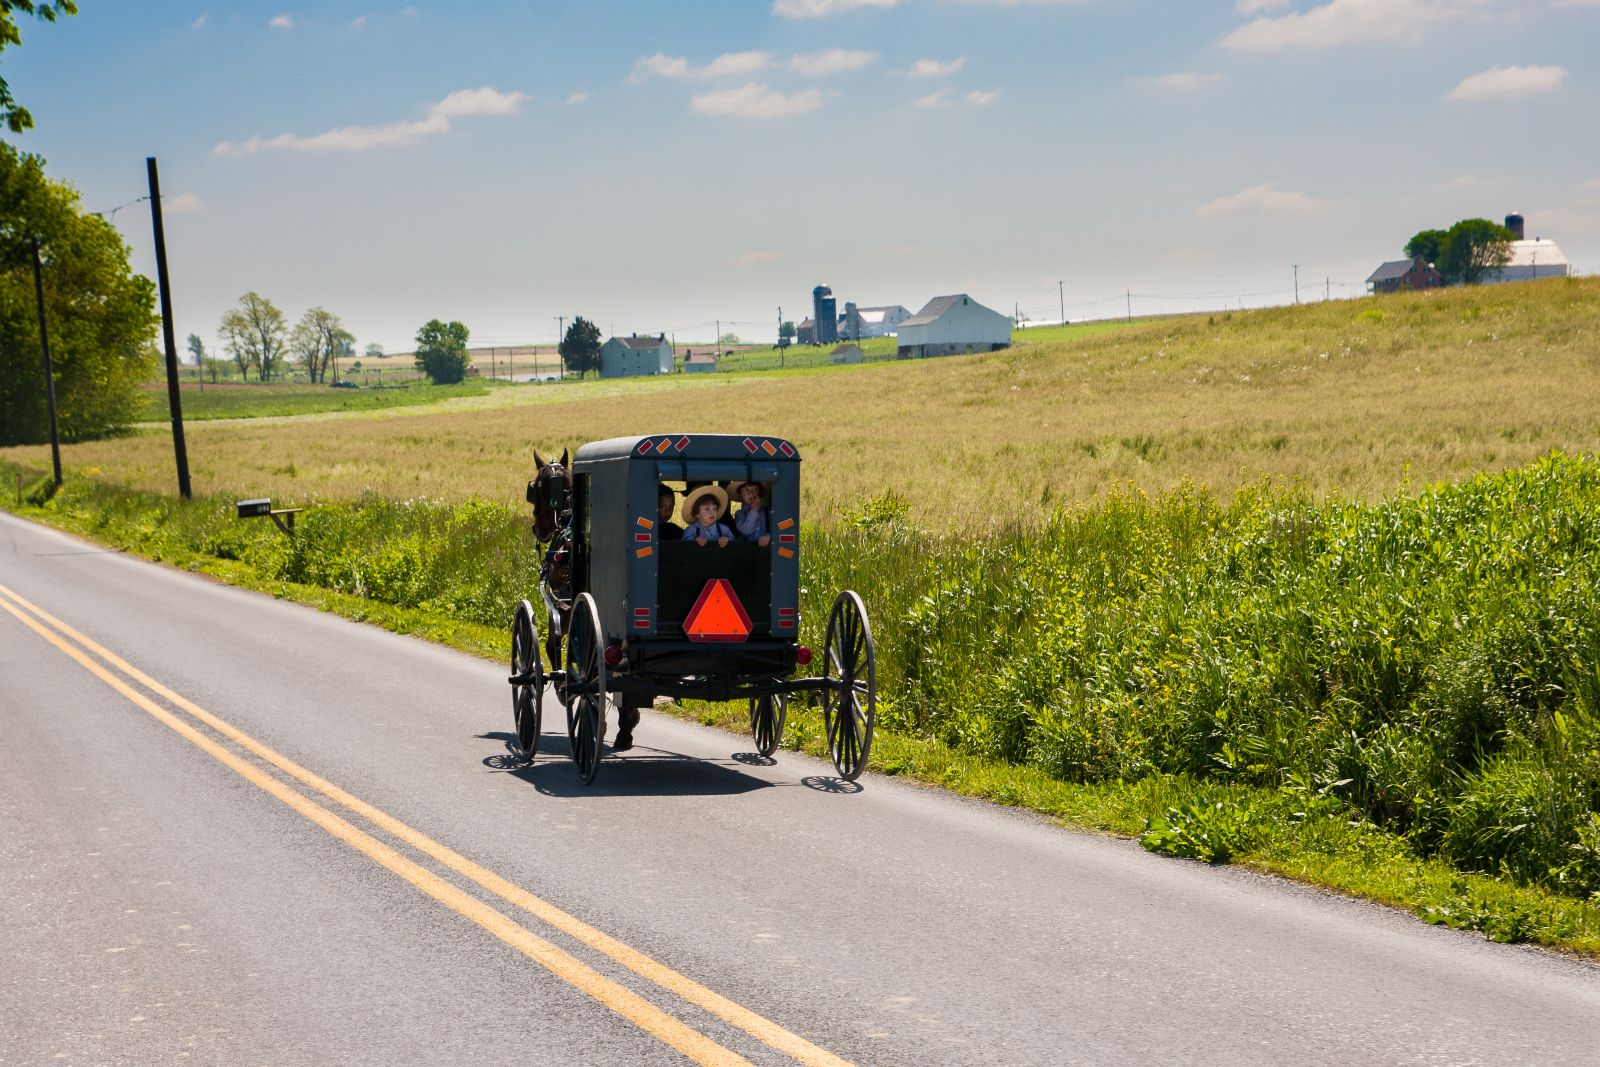 One Amish experience that was a definite must was a buggy ride tour. And I promise you won't be the only buggy on the road, since the Amish do not drive cars. Even with a few buggies, it's nothing compared to I-270 or I-66. Ah,  now this I could get used to! The driver gave us lots of information and a good look into the Amish way of life. (Image: Courtesy Discover Lancaster)